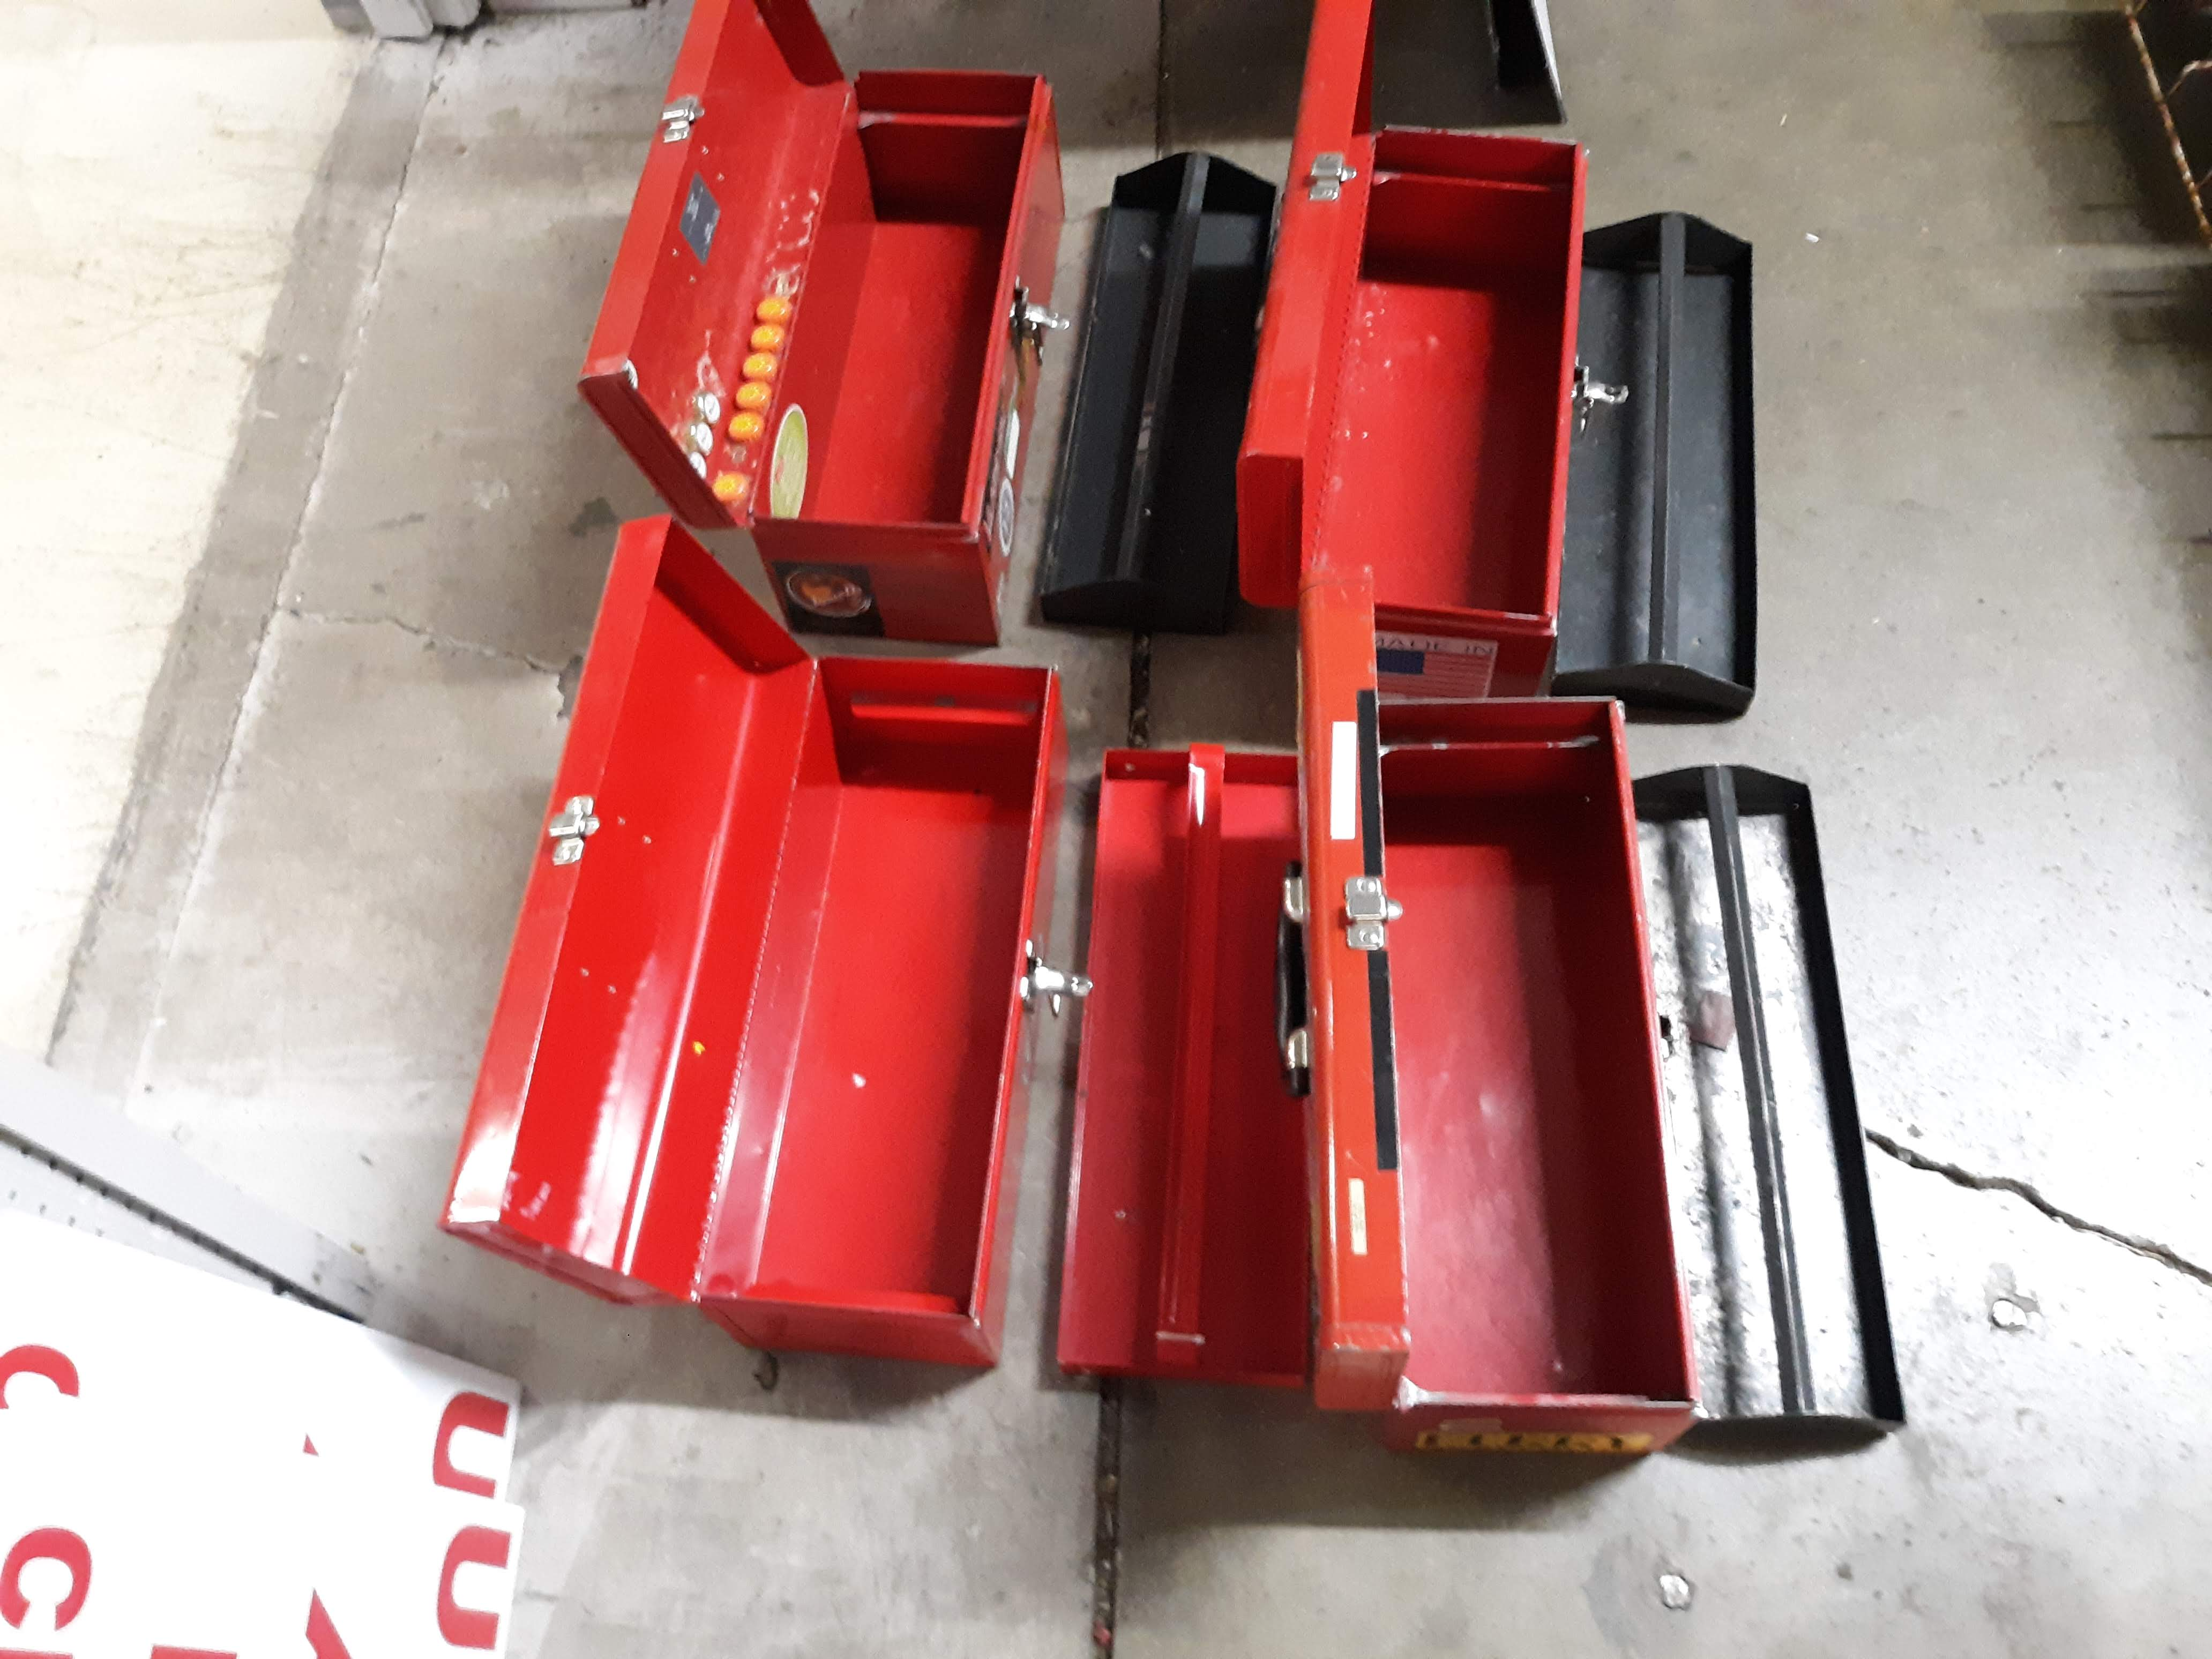 (4) TOOL BOXES (LOCATED AT: 432 COUNCIL DRIVE, FORT WAYNE, IN 46825) - Image 3 of 3